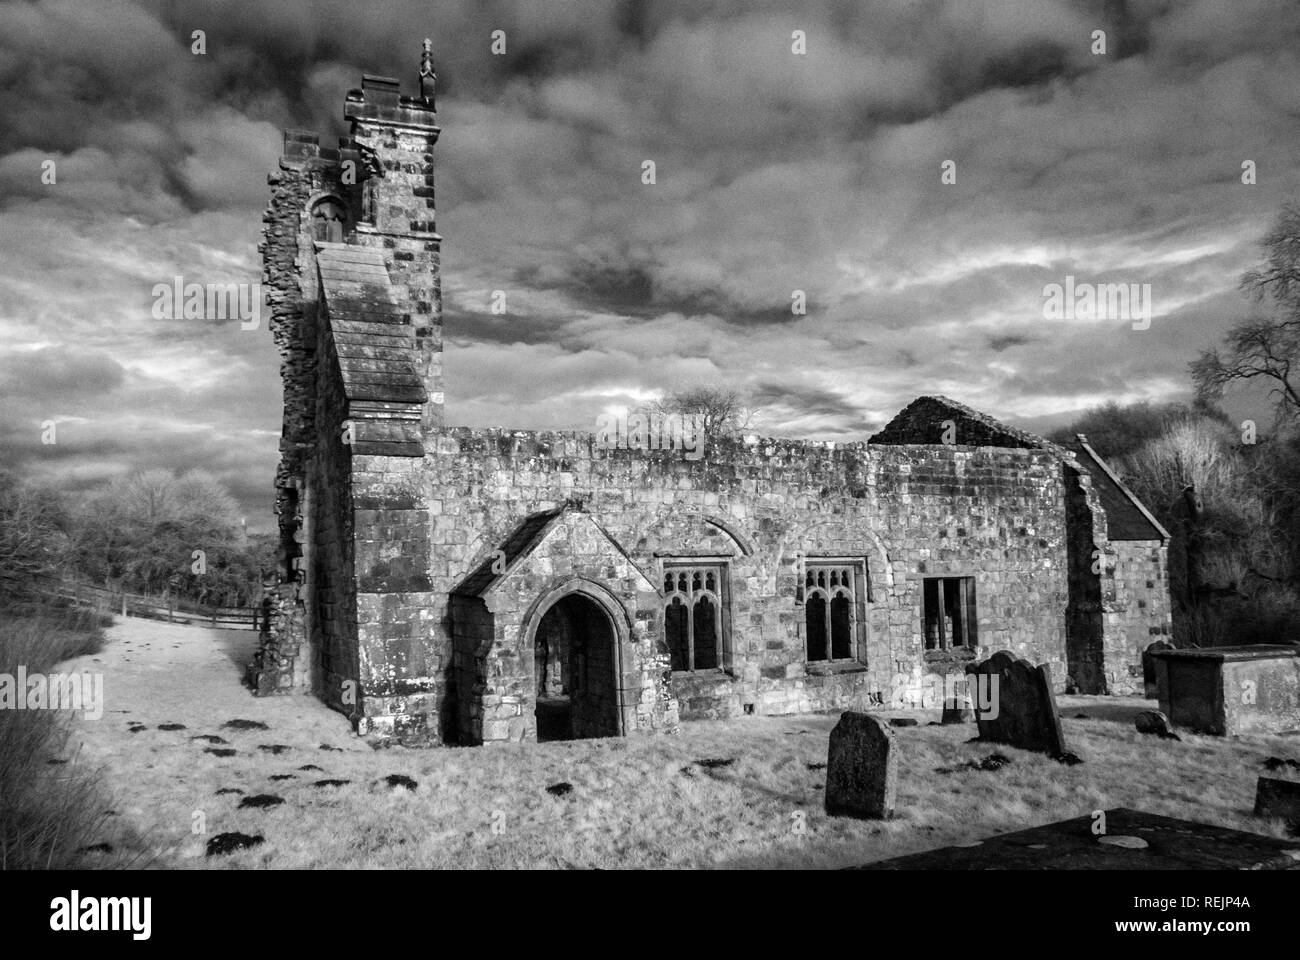 Wharram Percy, Ruined Church and Deserted Medieval Village, near Malton, East Yorkshire - Stock Image